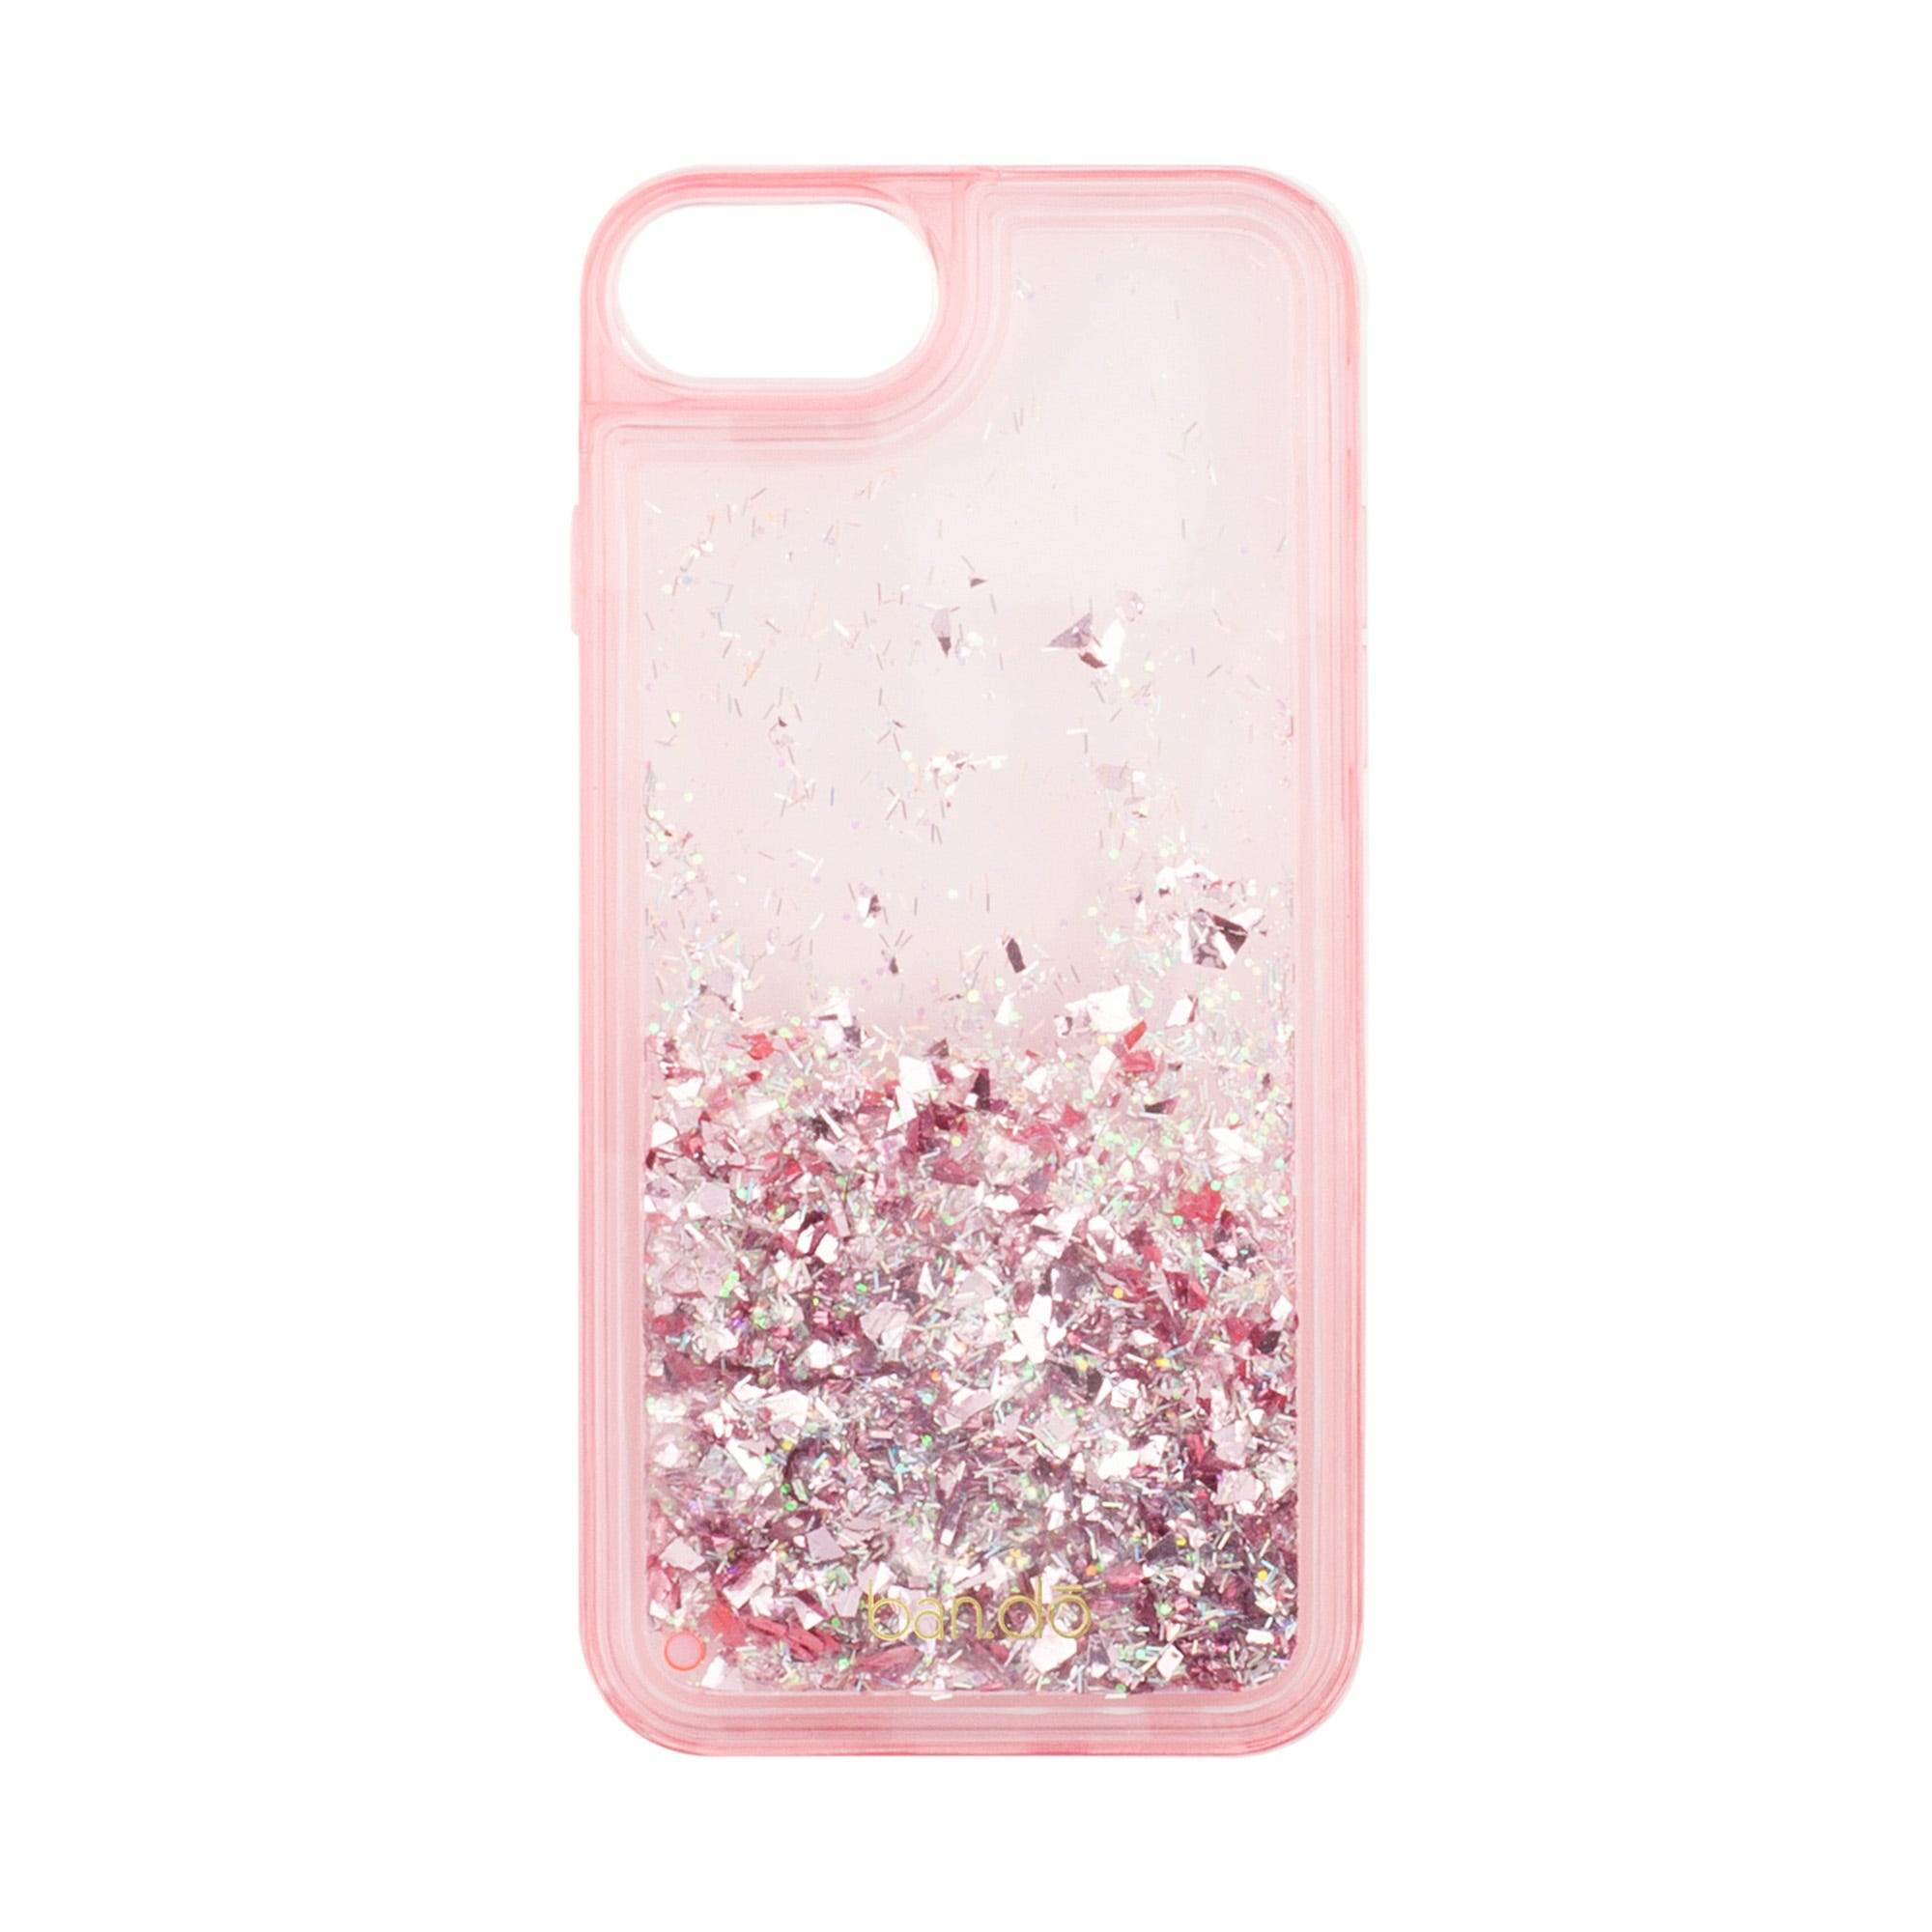 Pink Glitter Bomb iPhone 7 Case